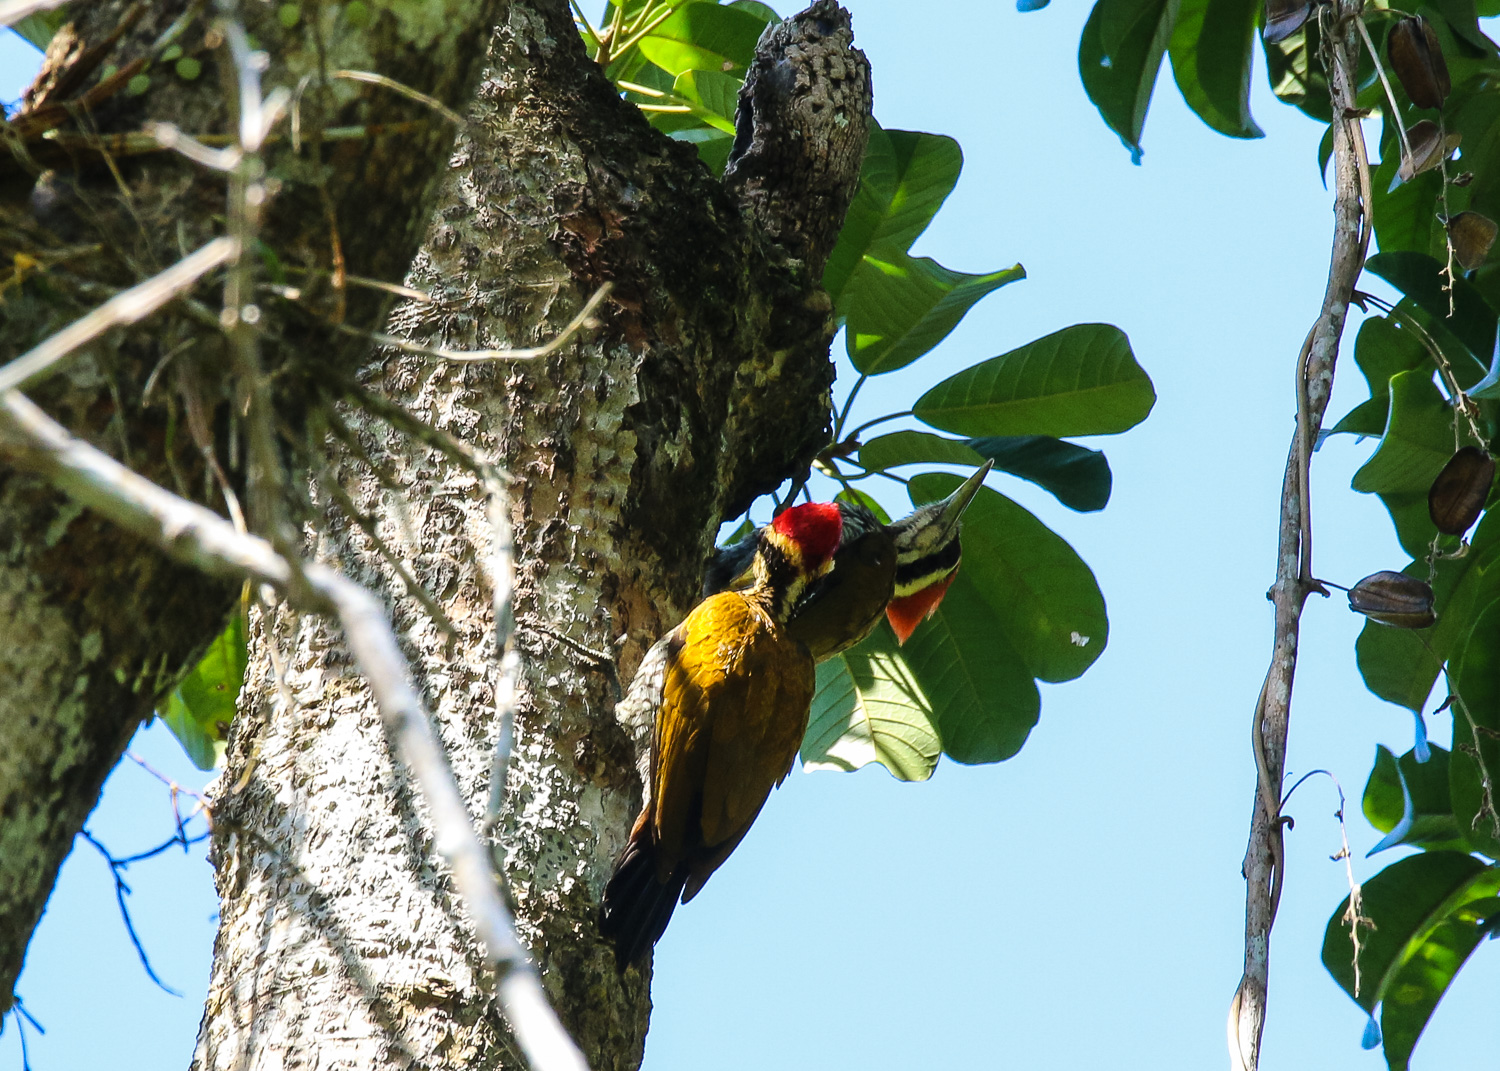 Young and Adult Male Javan Flameback